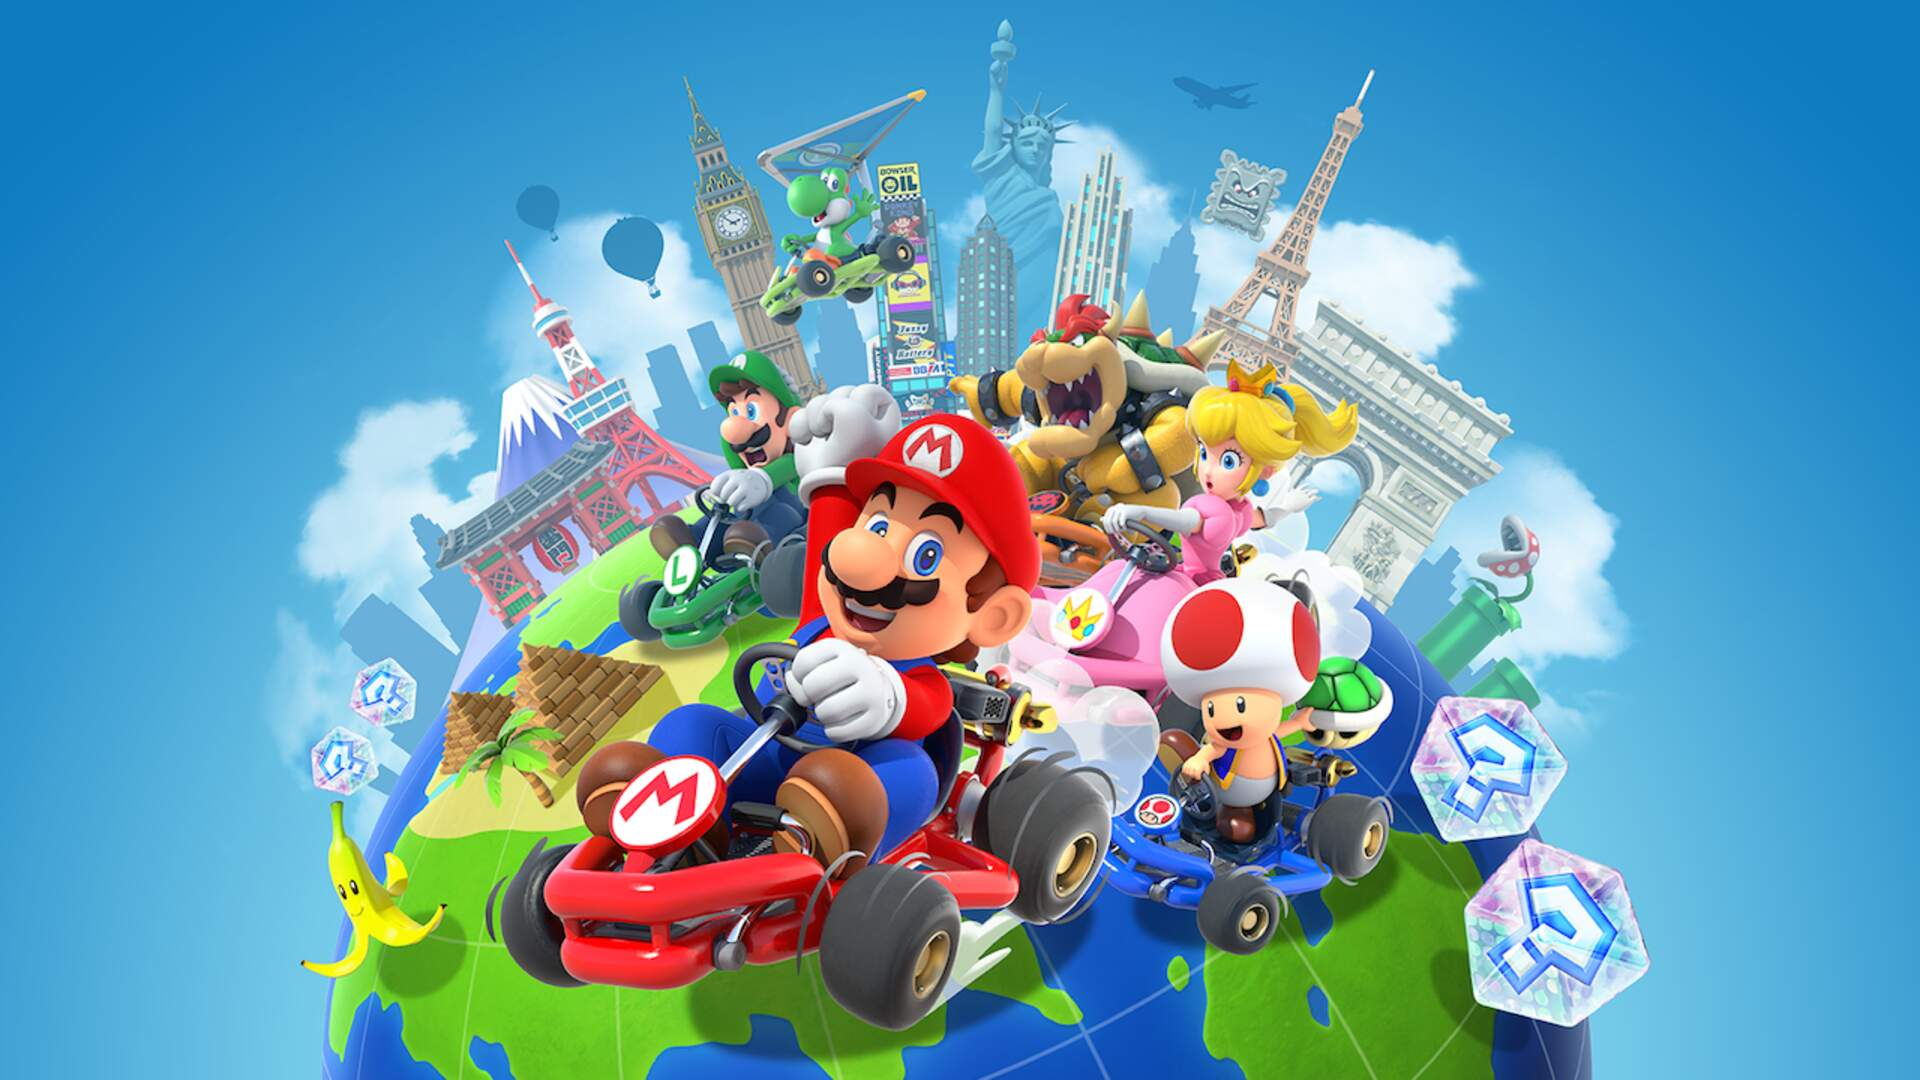 Mario Kart Tour Breaks Another Mobile Nintendo Record, But Still Lags Behind Others